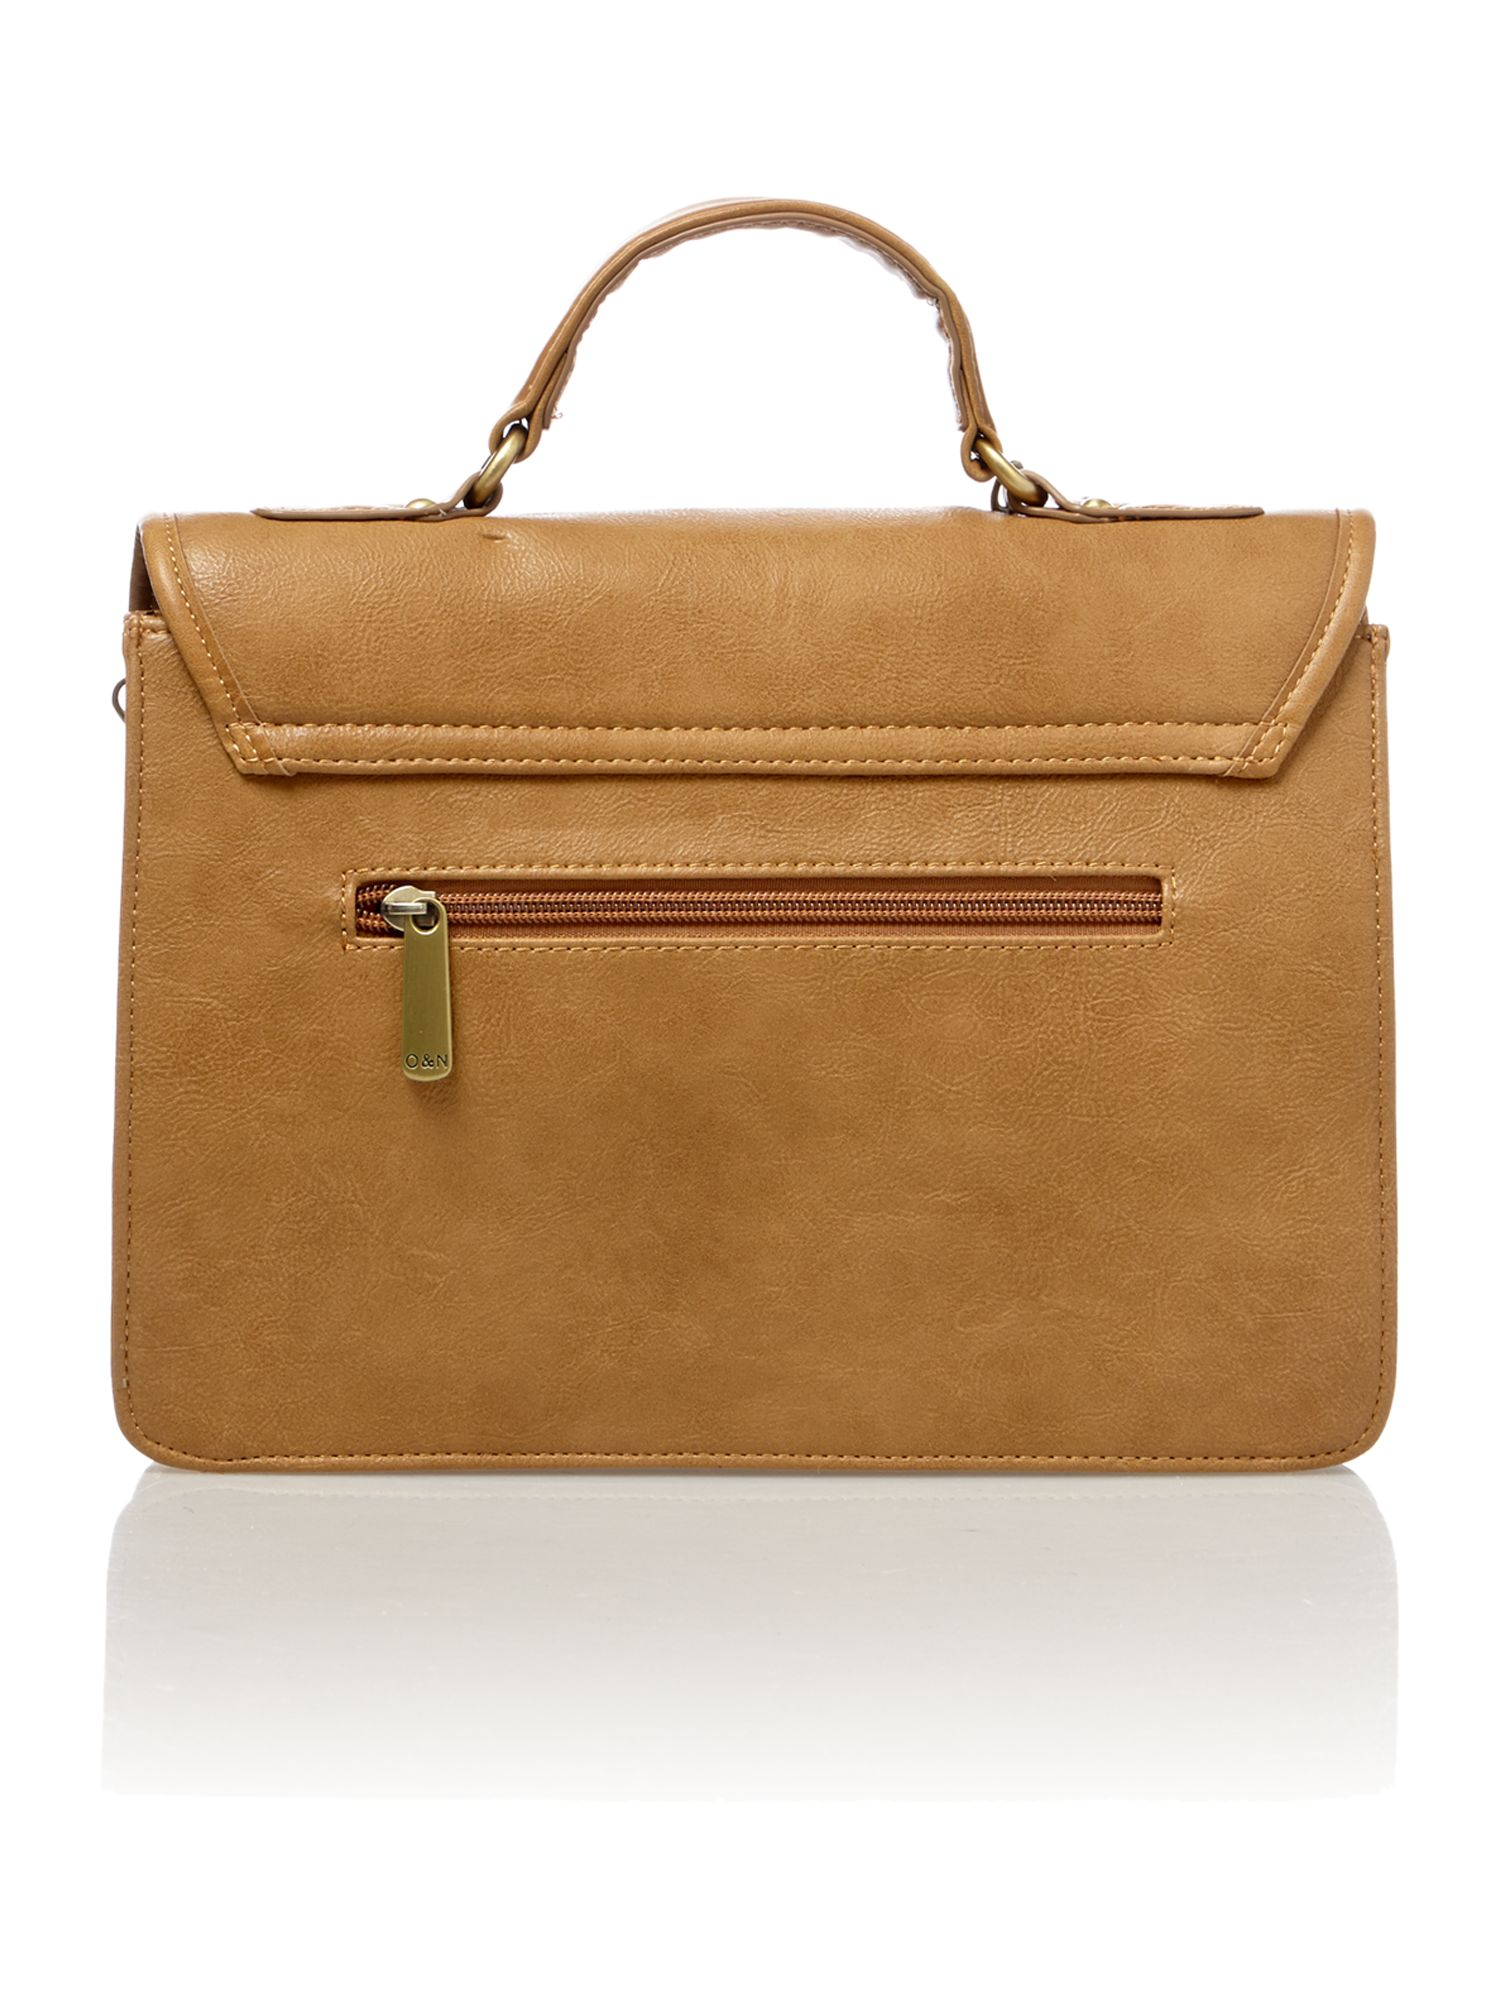 Lara tan satchel bag